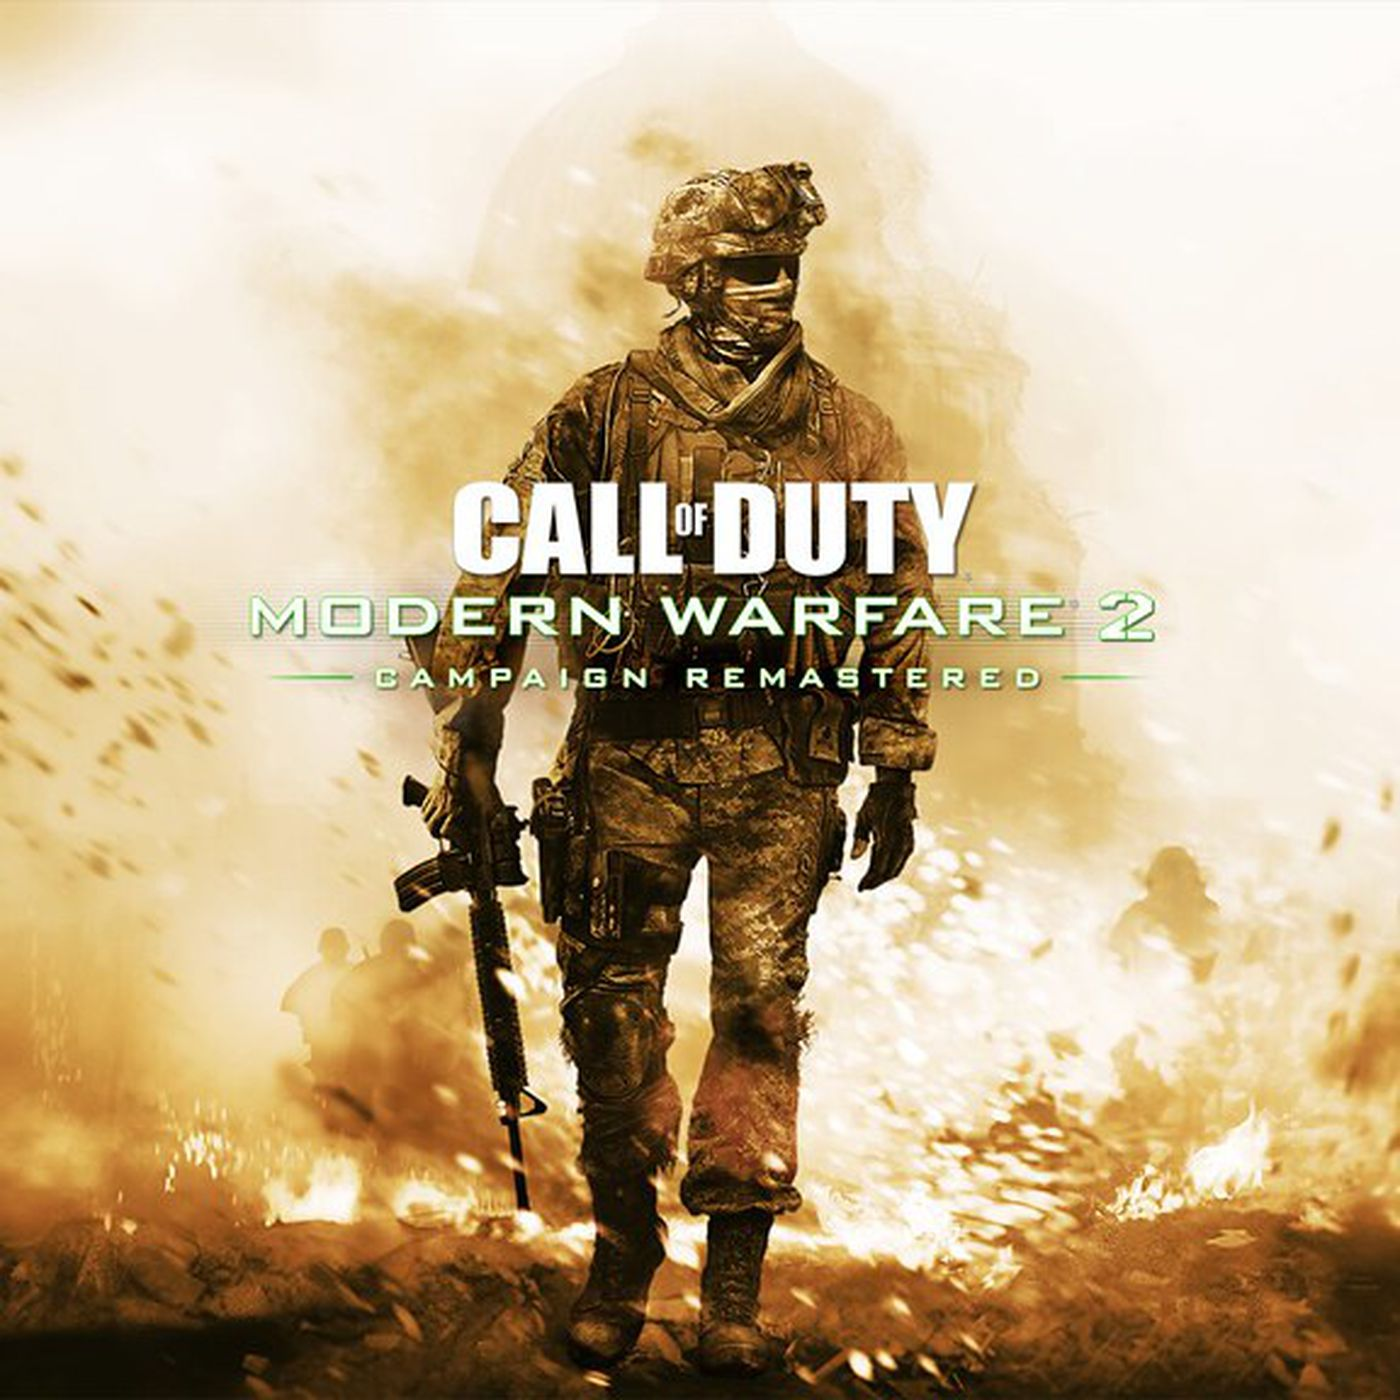 Call Of Duty Modern Warfare 2 Has Been Remastered And Is Out